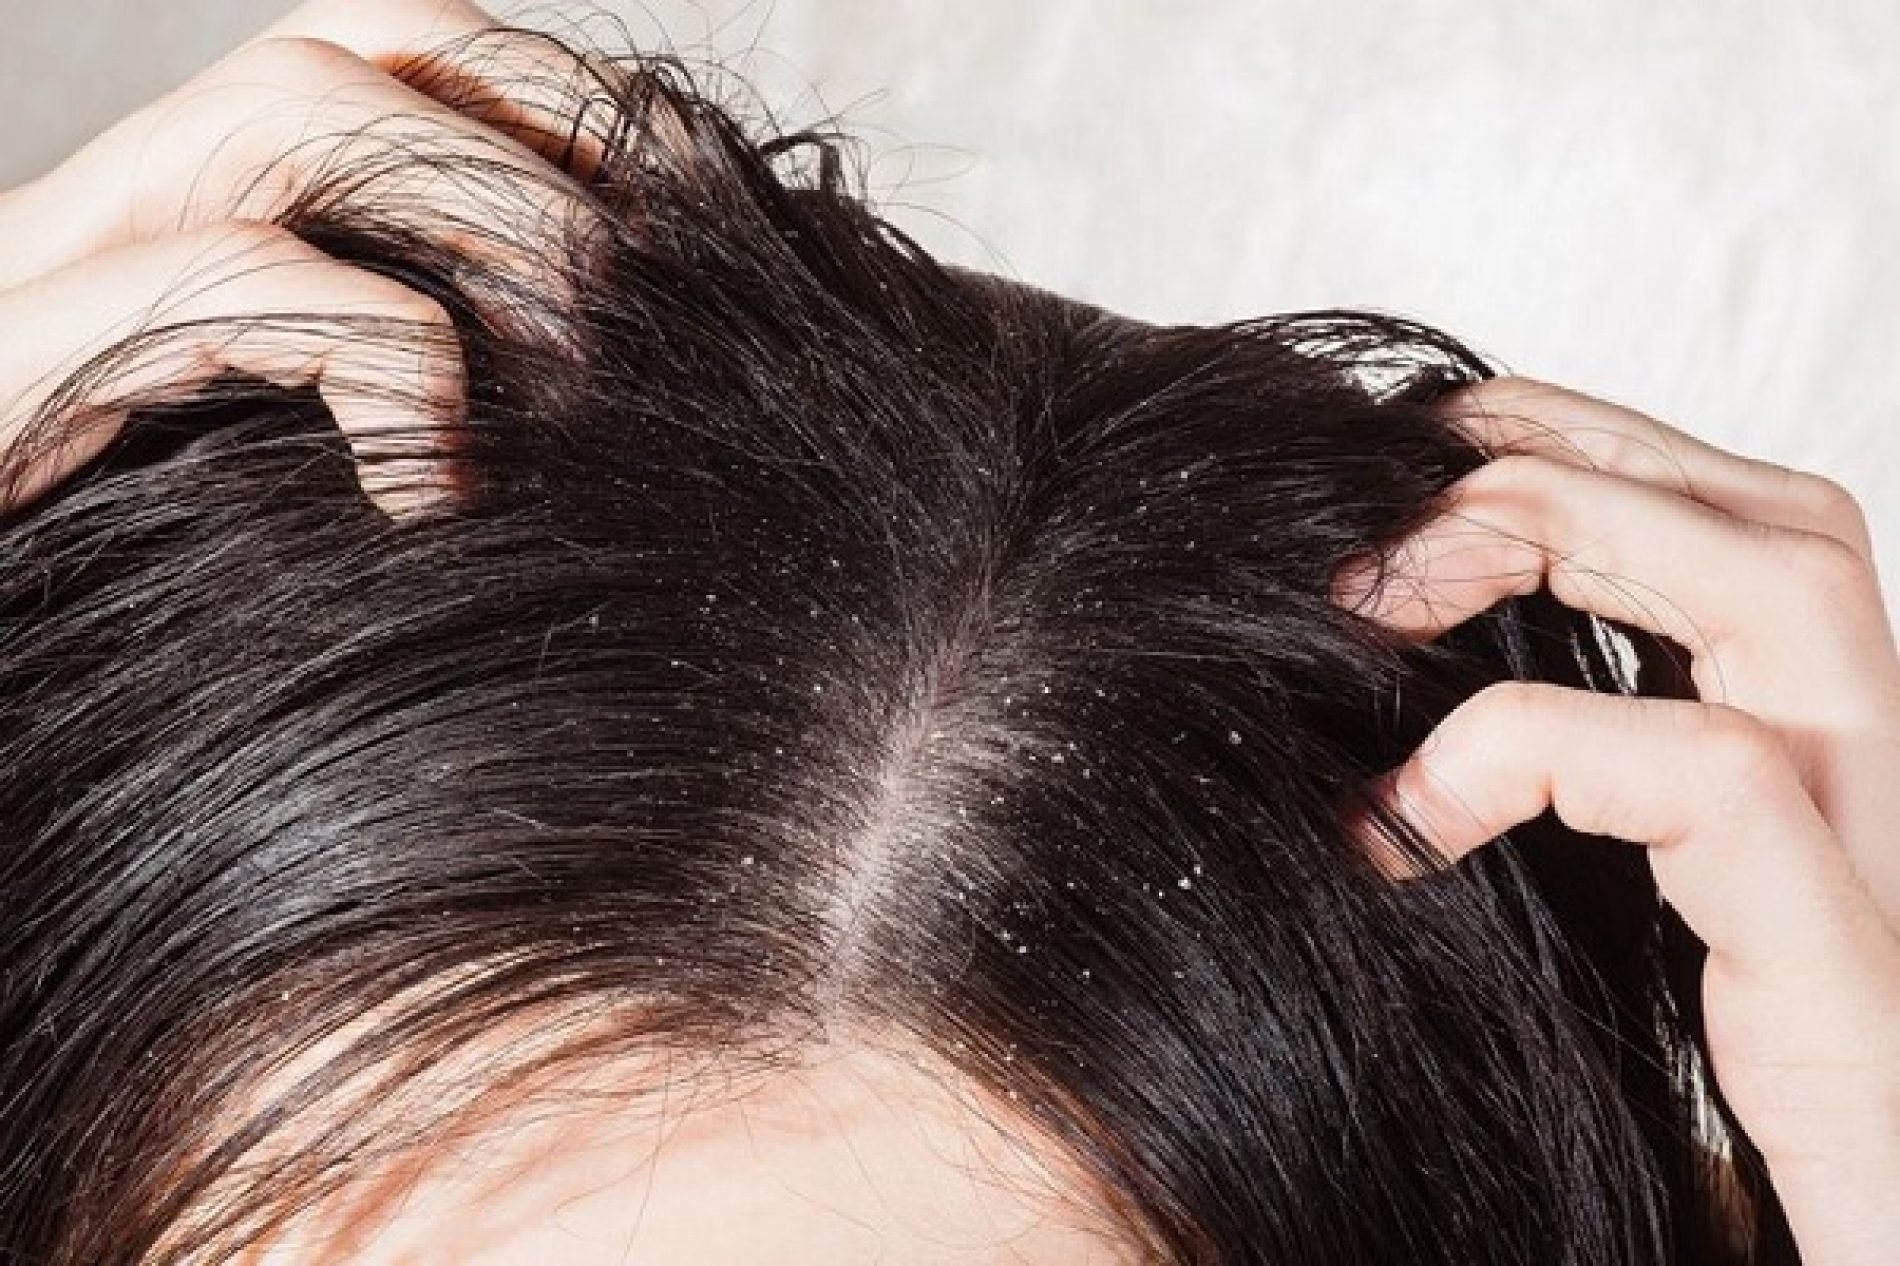 Best ideas about DIY Hair Mask For Dandruff . Save or Pin Homemade Hair Masks for Dandruff Get Rid of Dandruff Now.